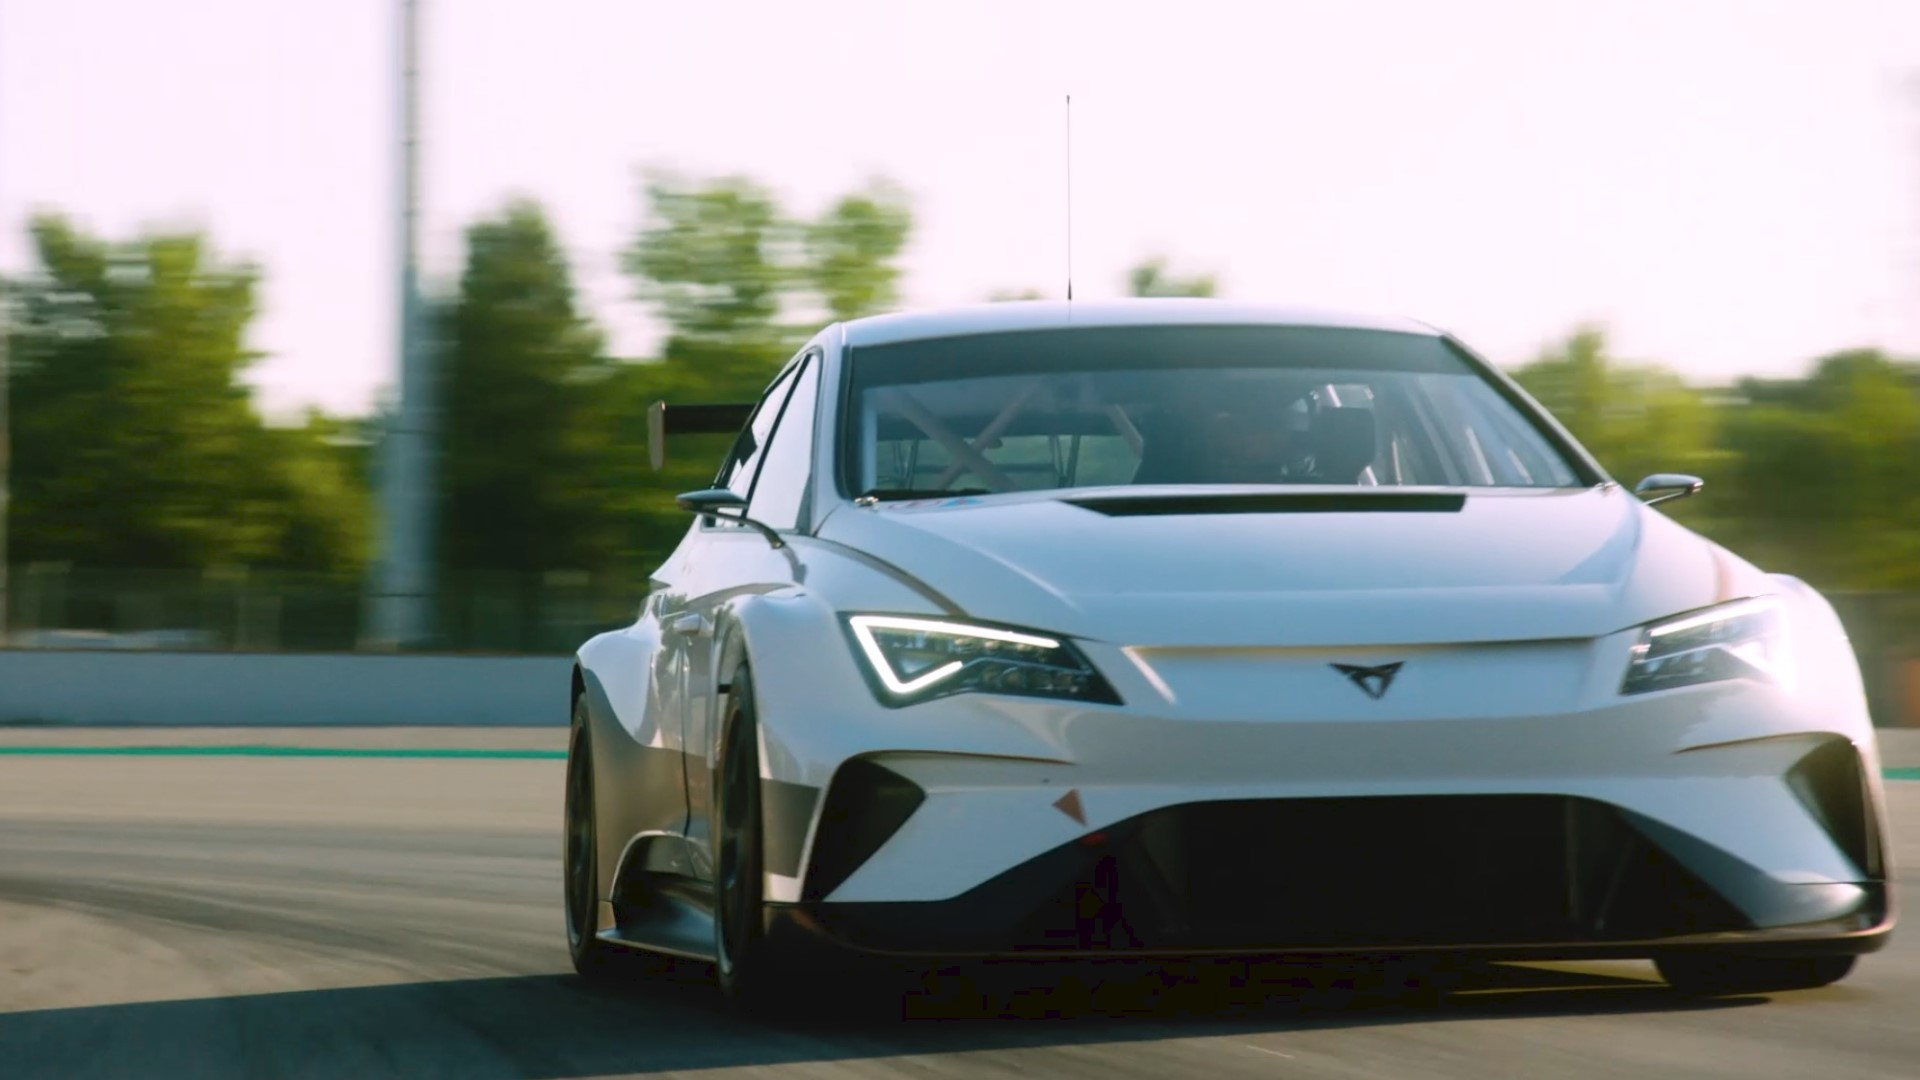 ford mustang mach e suv starts a blitz of new electric vehicles wcnc com world s first zero emissions electric race car takes to the track